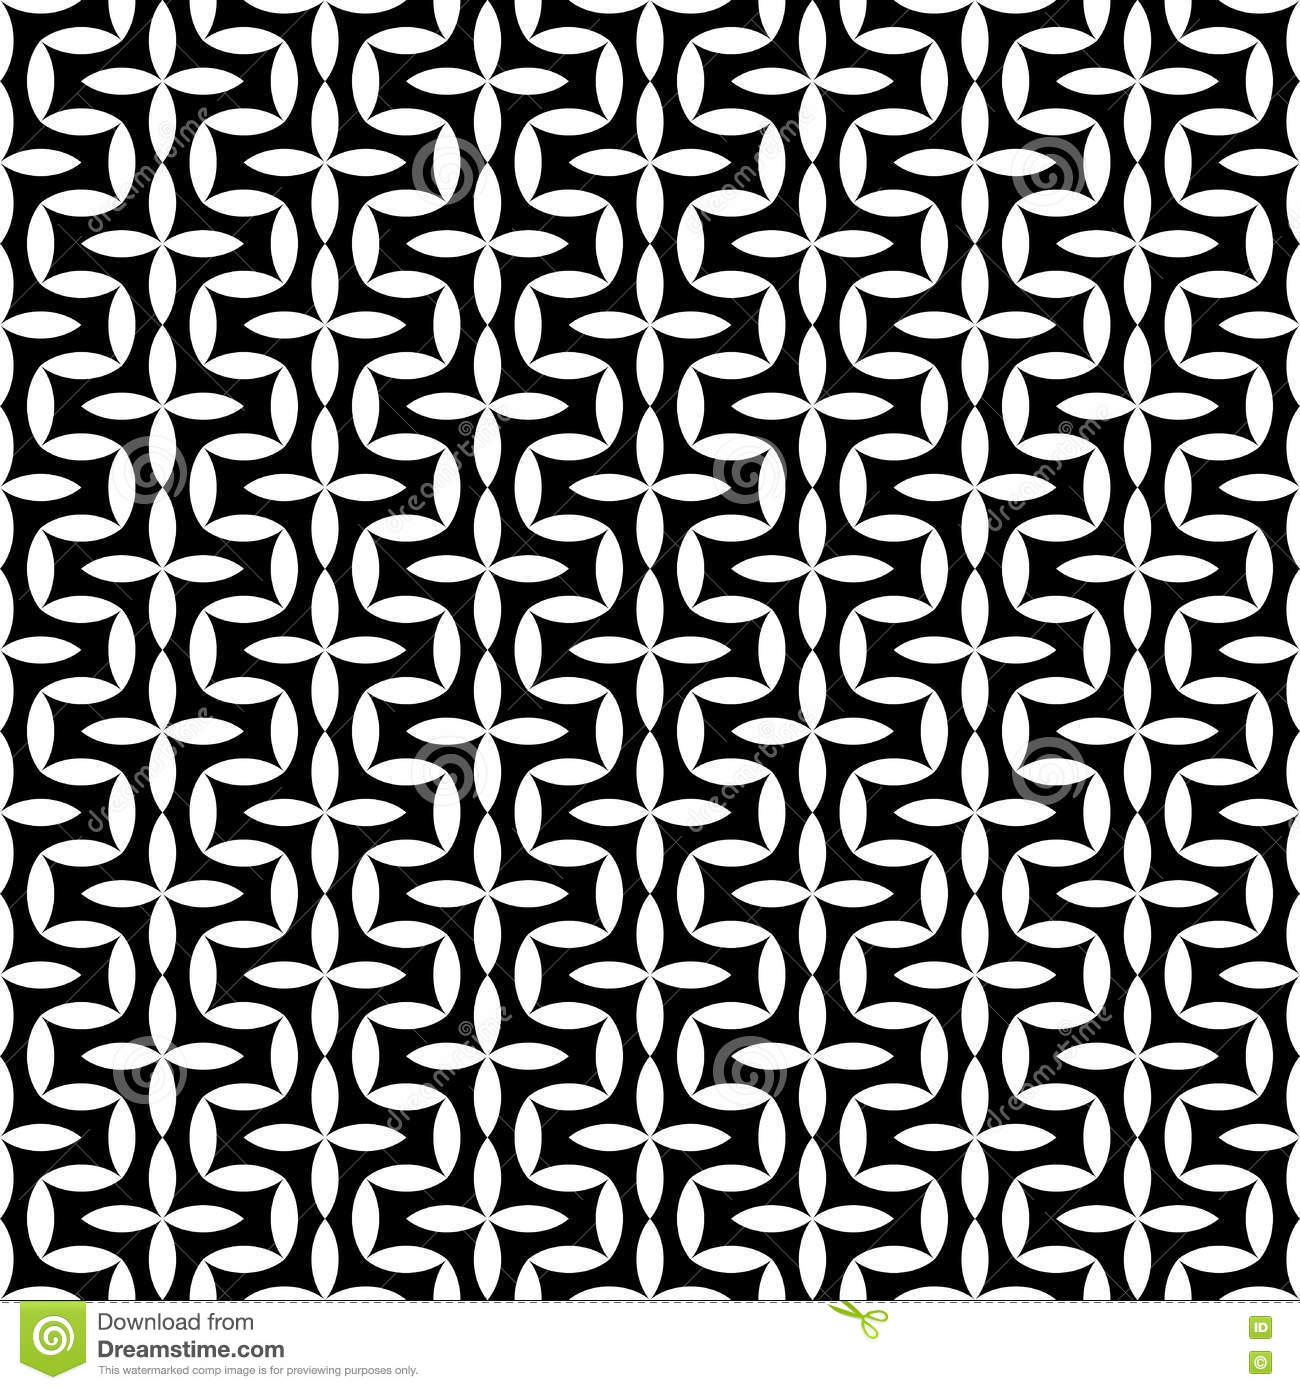 Black bed sheets pattern - Vector Modern Abstract Geometry Floral Pattern Black And White Seamless Geometric Background